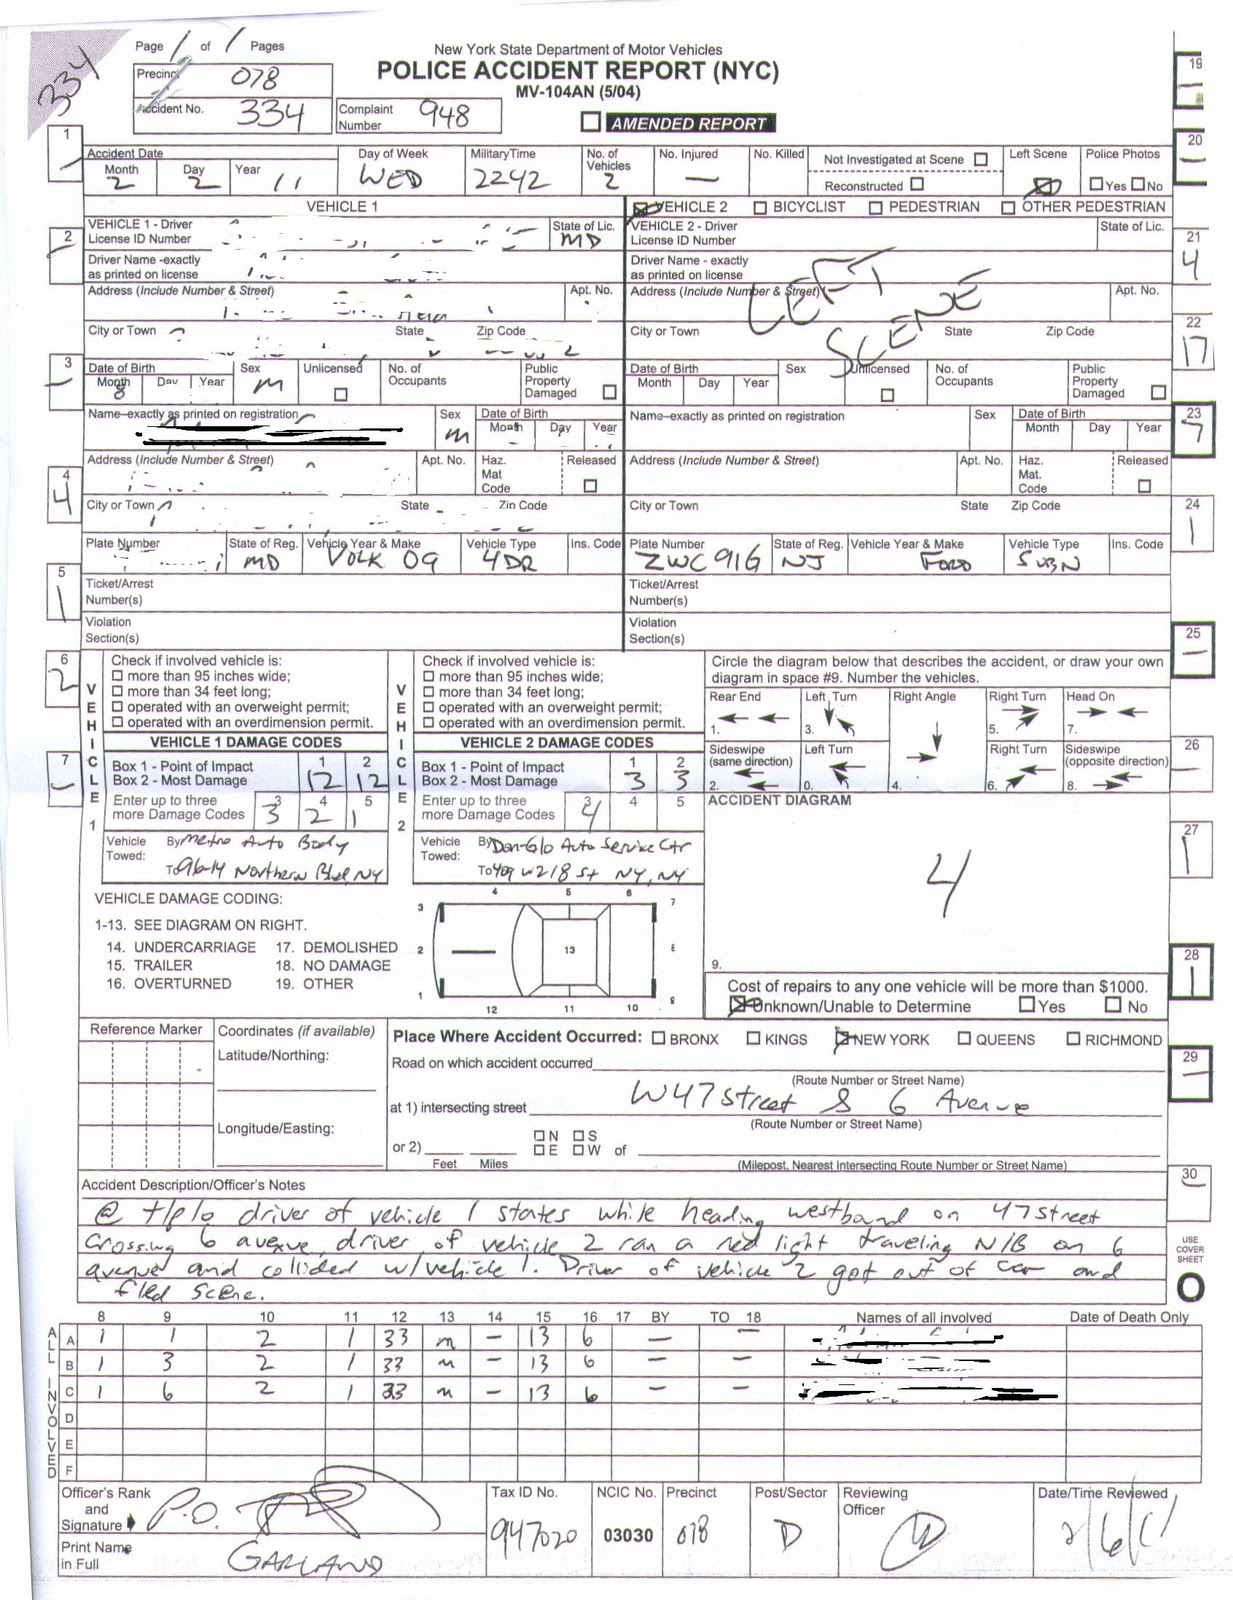 Hertz Car Rental Accident Report